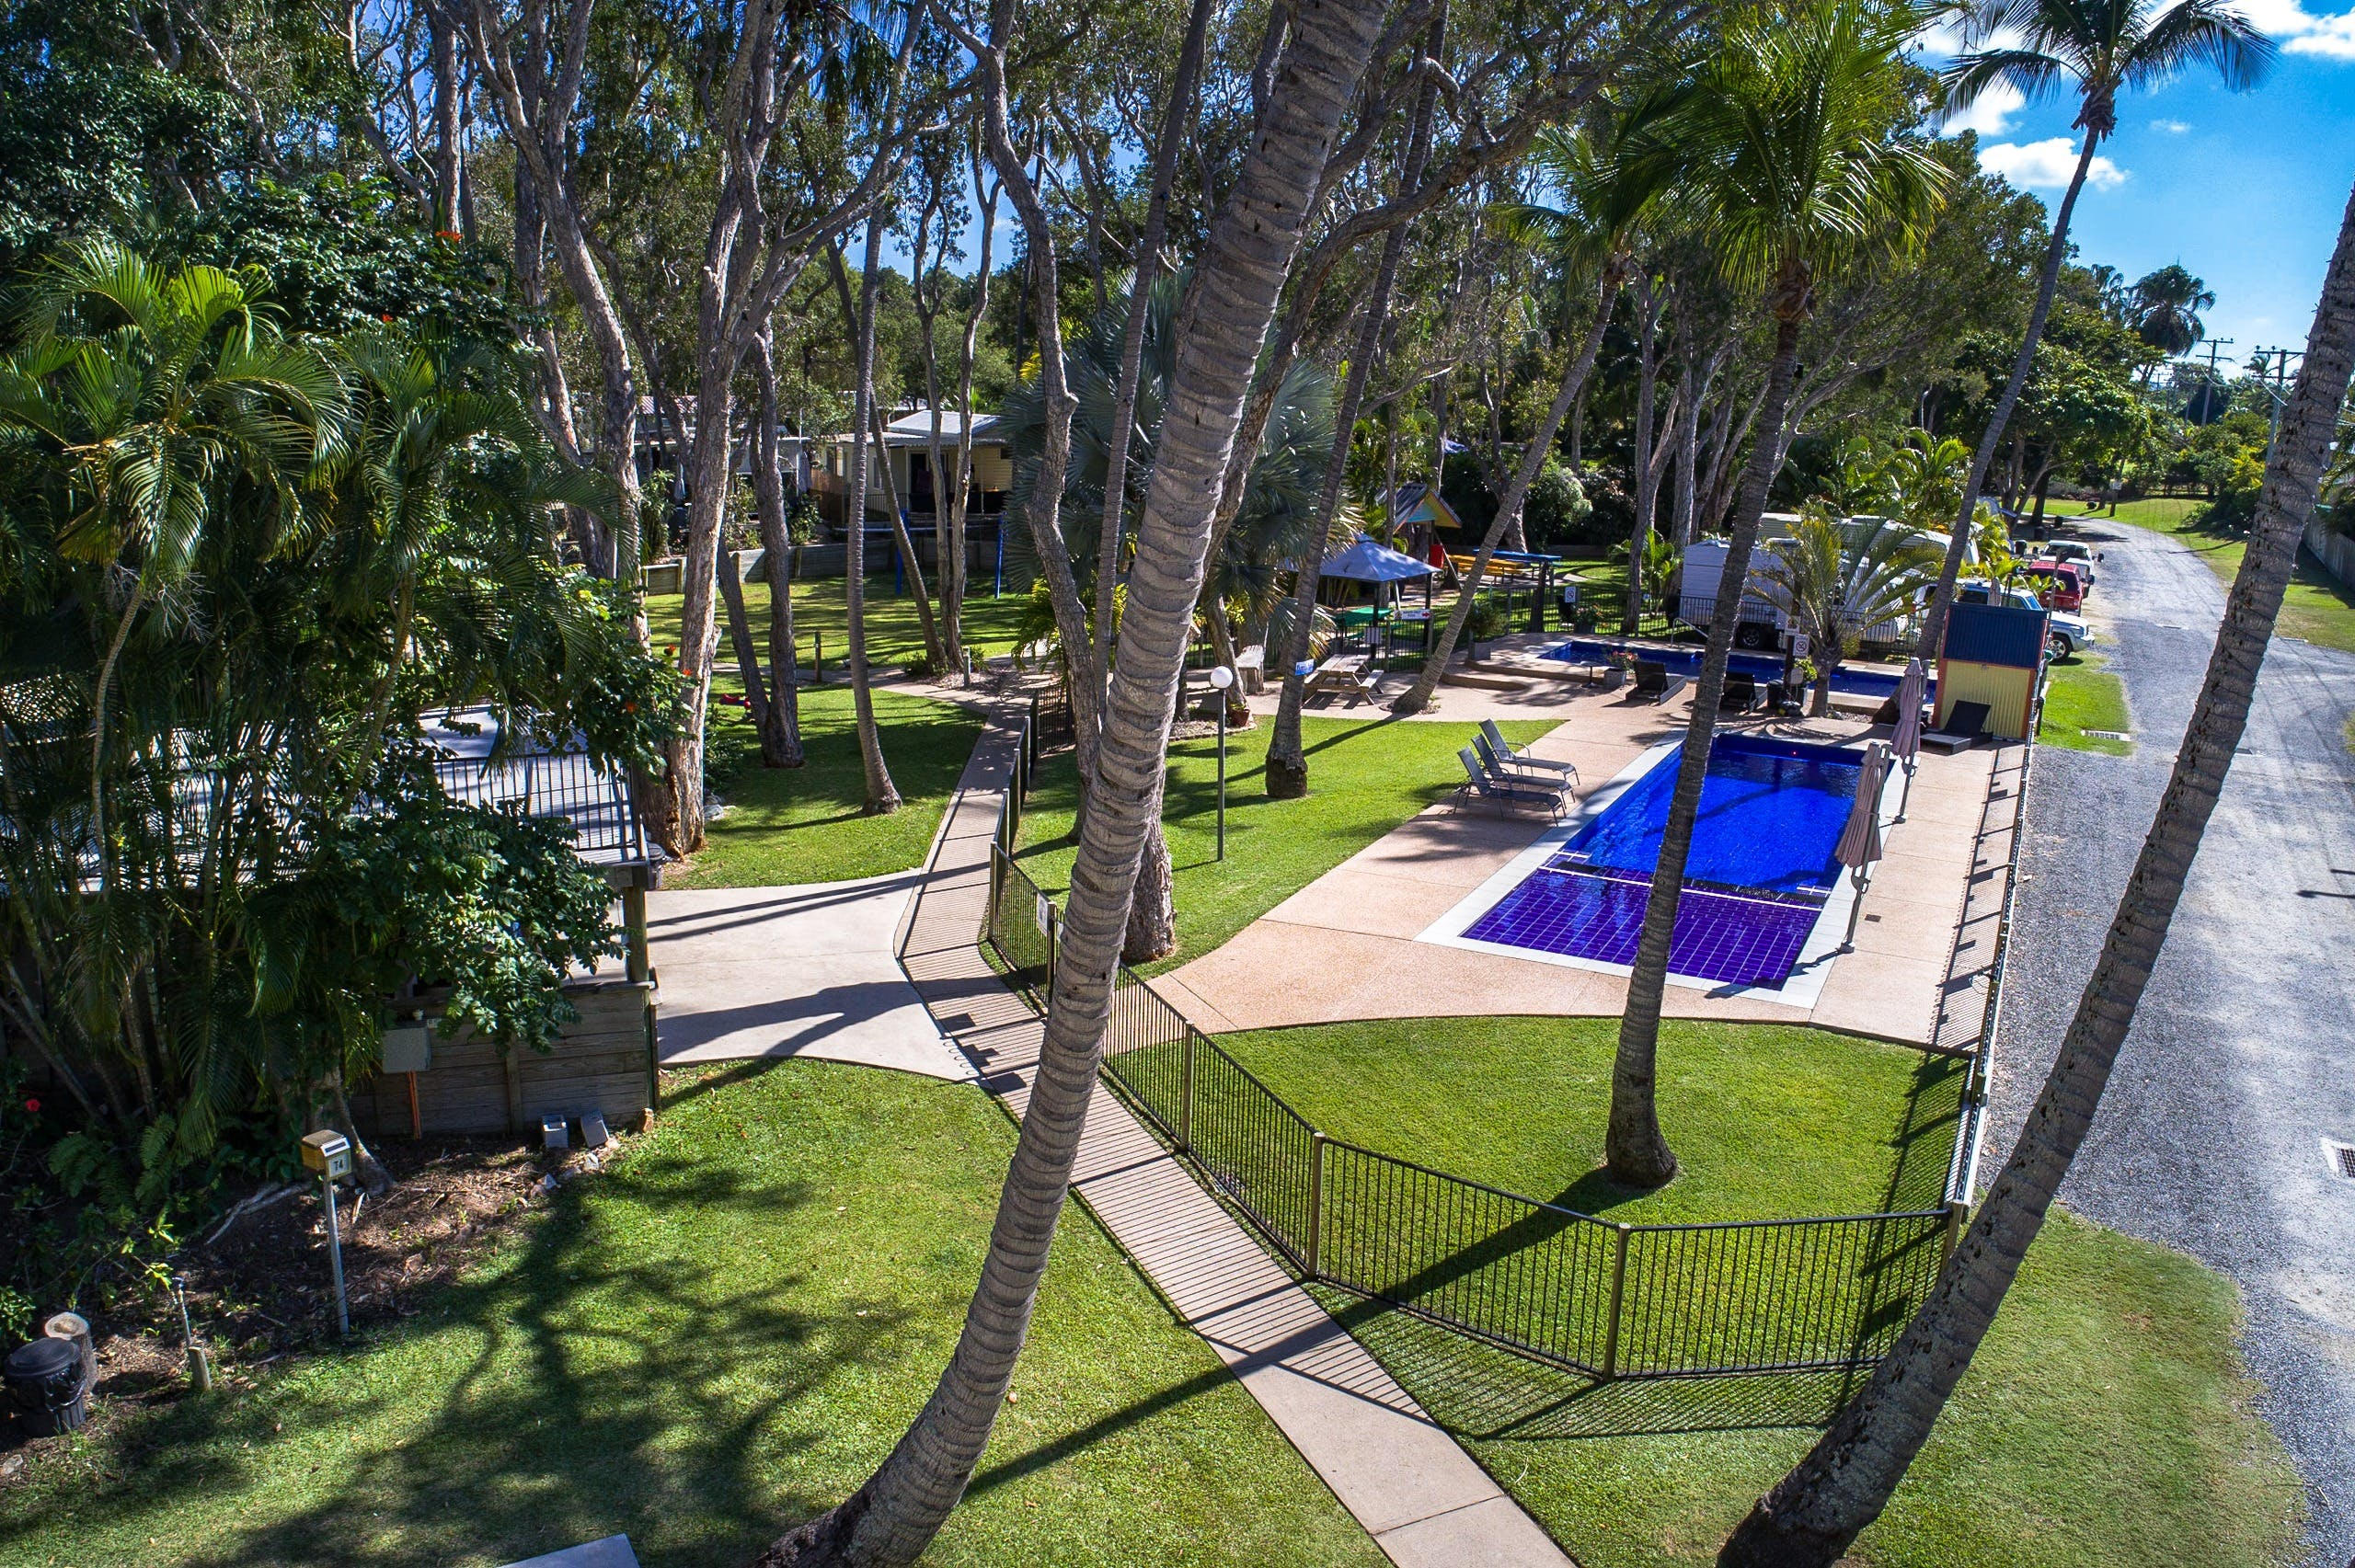 Island View Caravan Park - Accommodation in Surfers Paradise